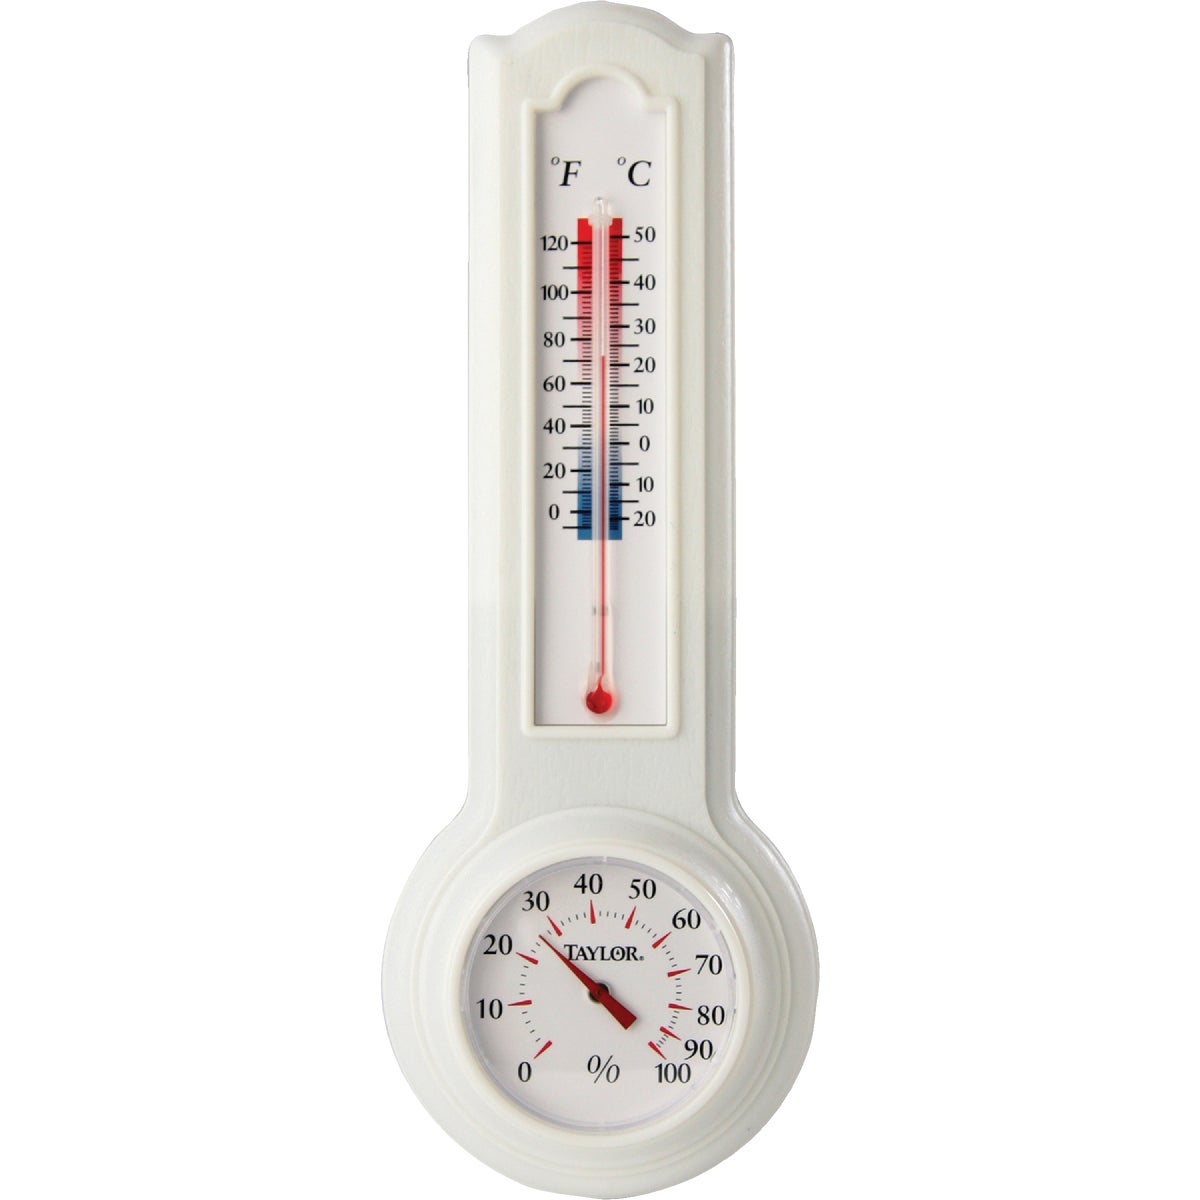 HUMIDIGUIDE/THERMOMETER